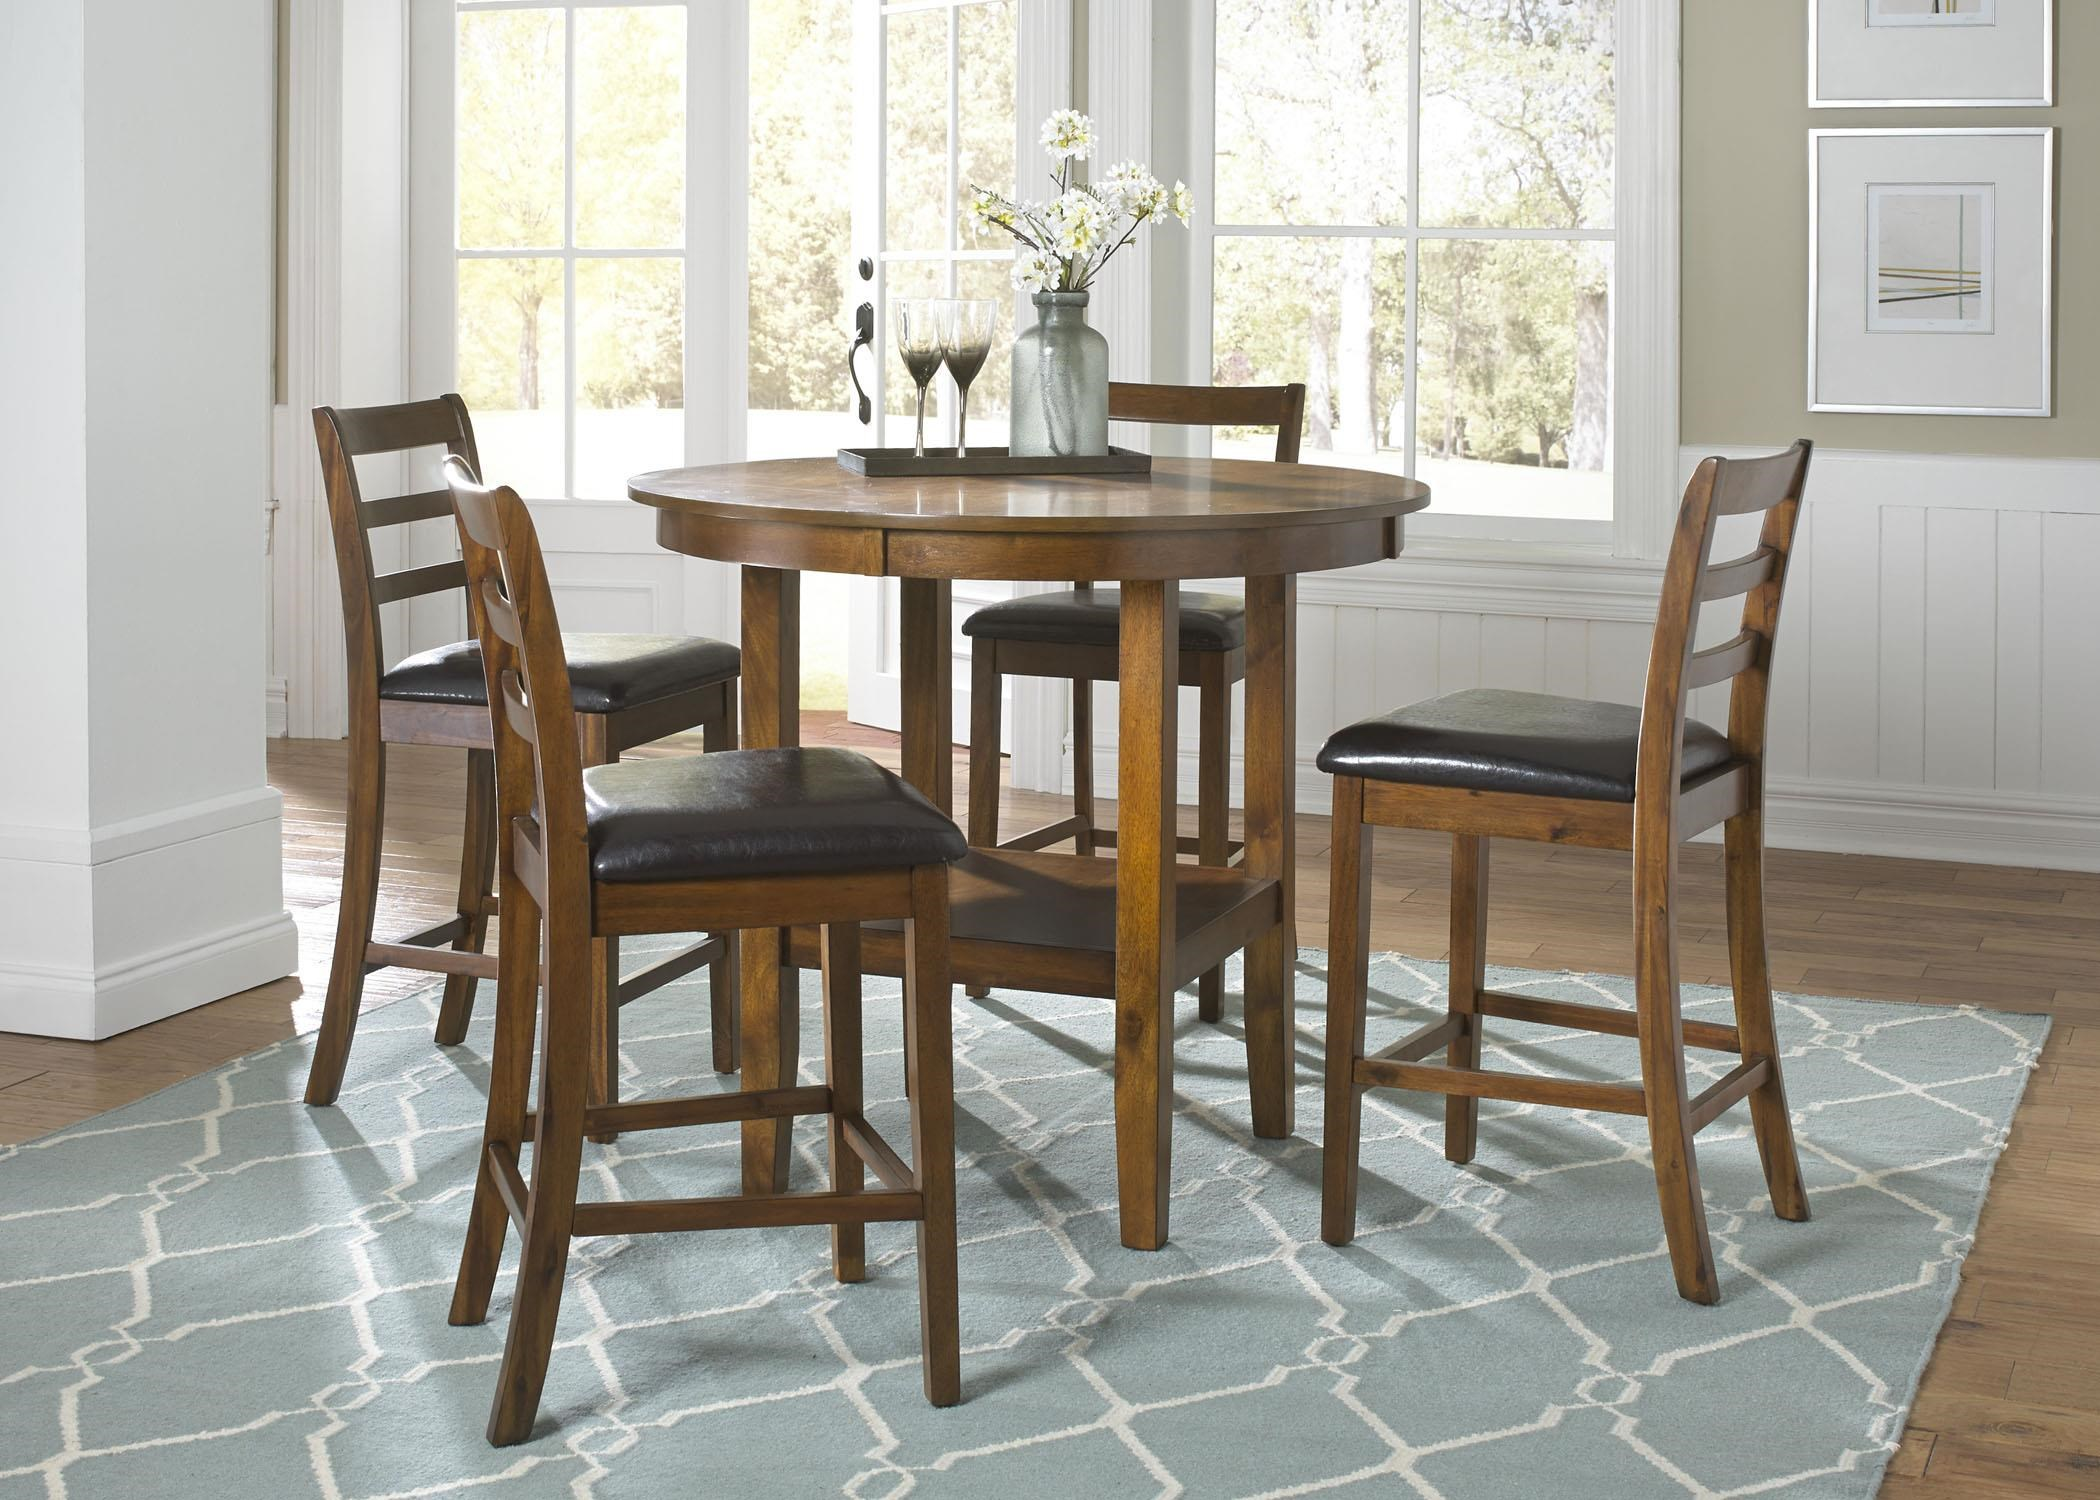 Liberty Furniture Tucson Dining II 5 Piece Pub Table Set